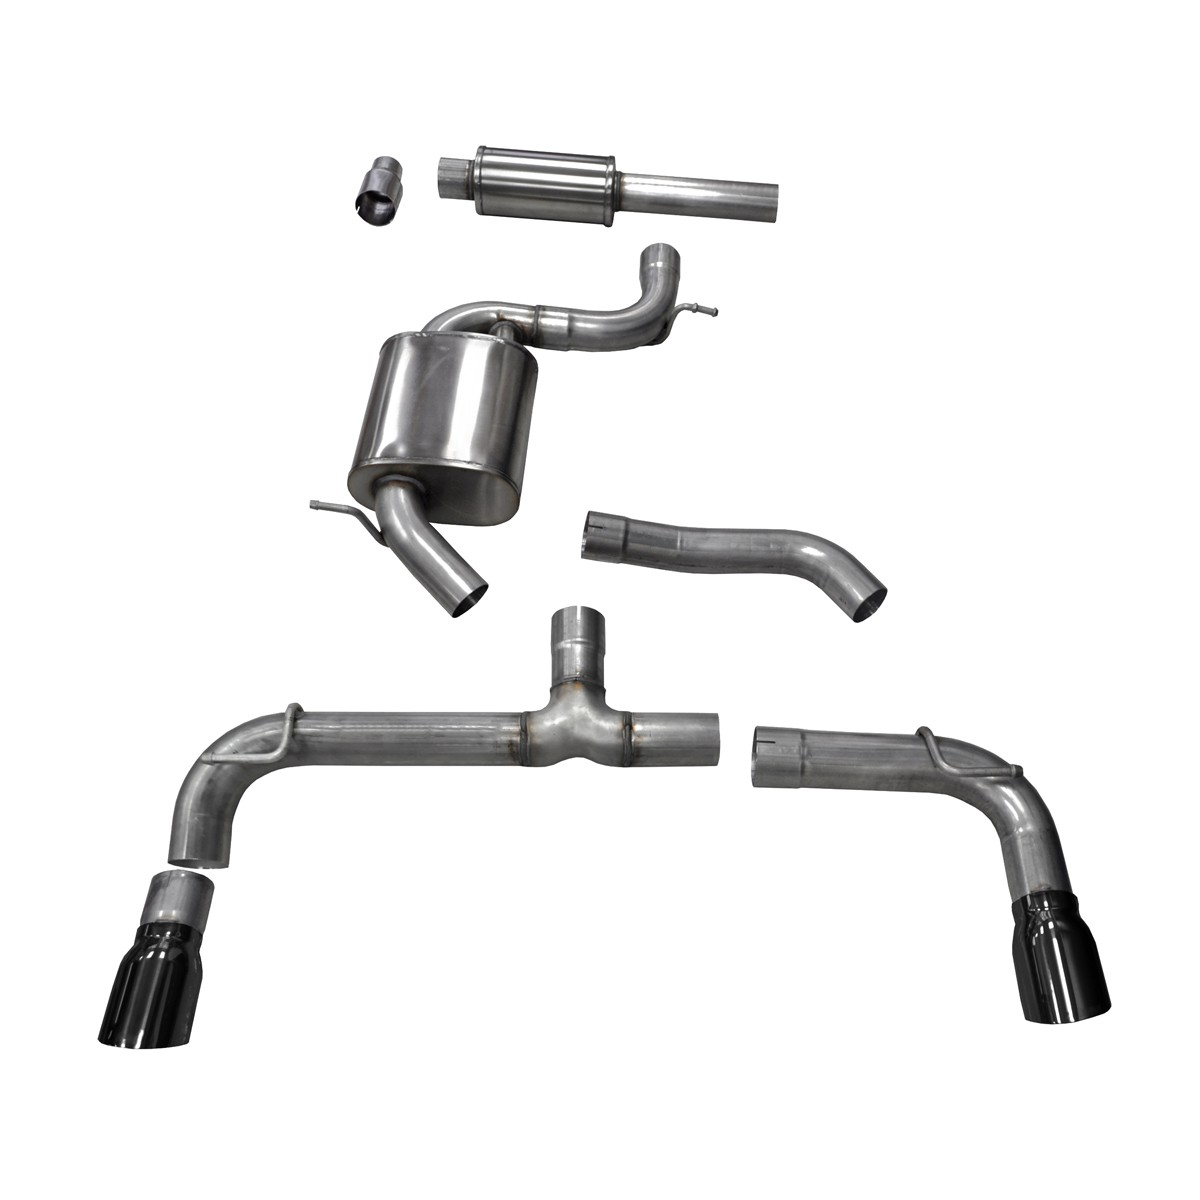 Image Result For Golf Cart Exhaust Tips